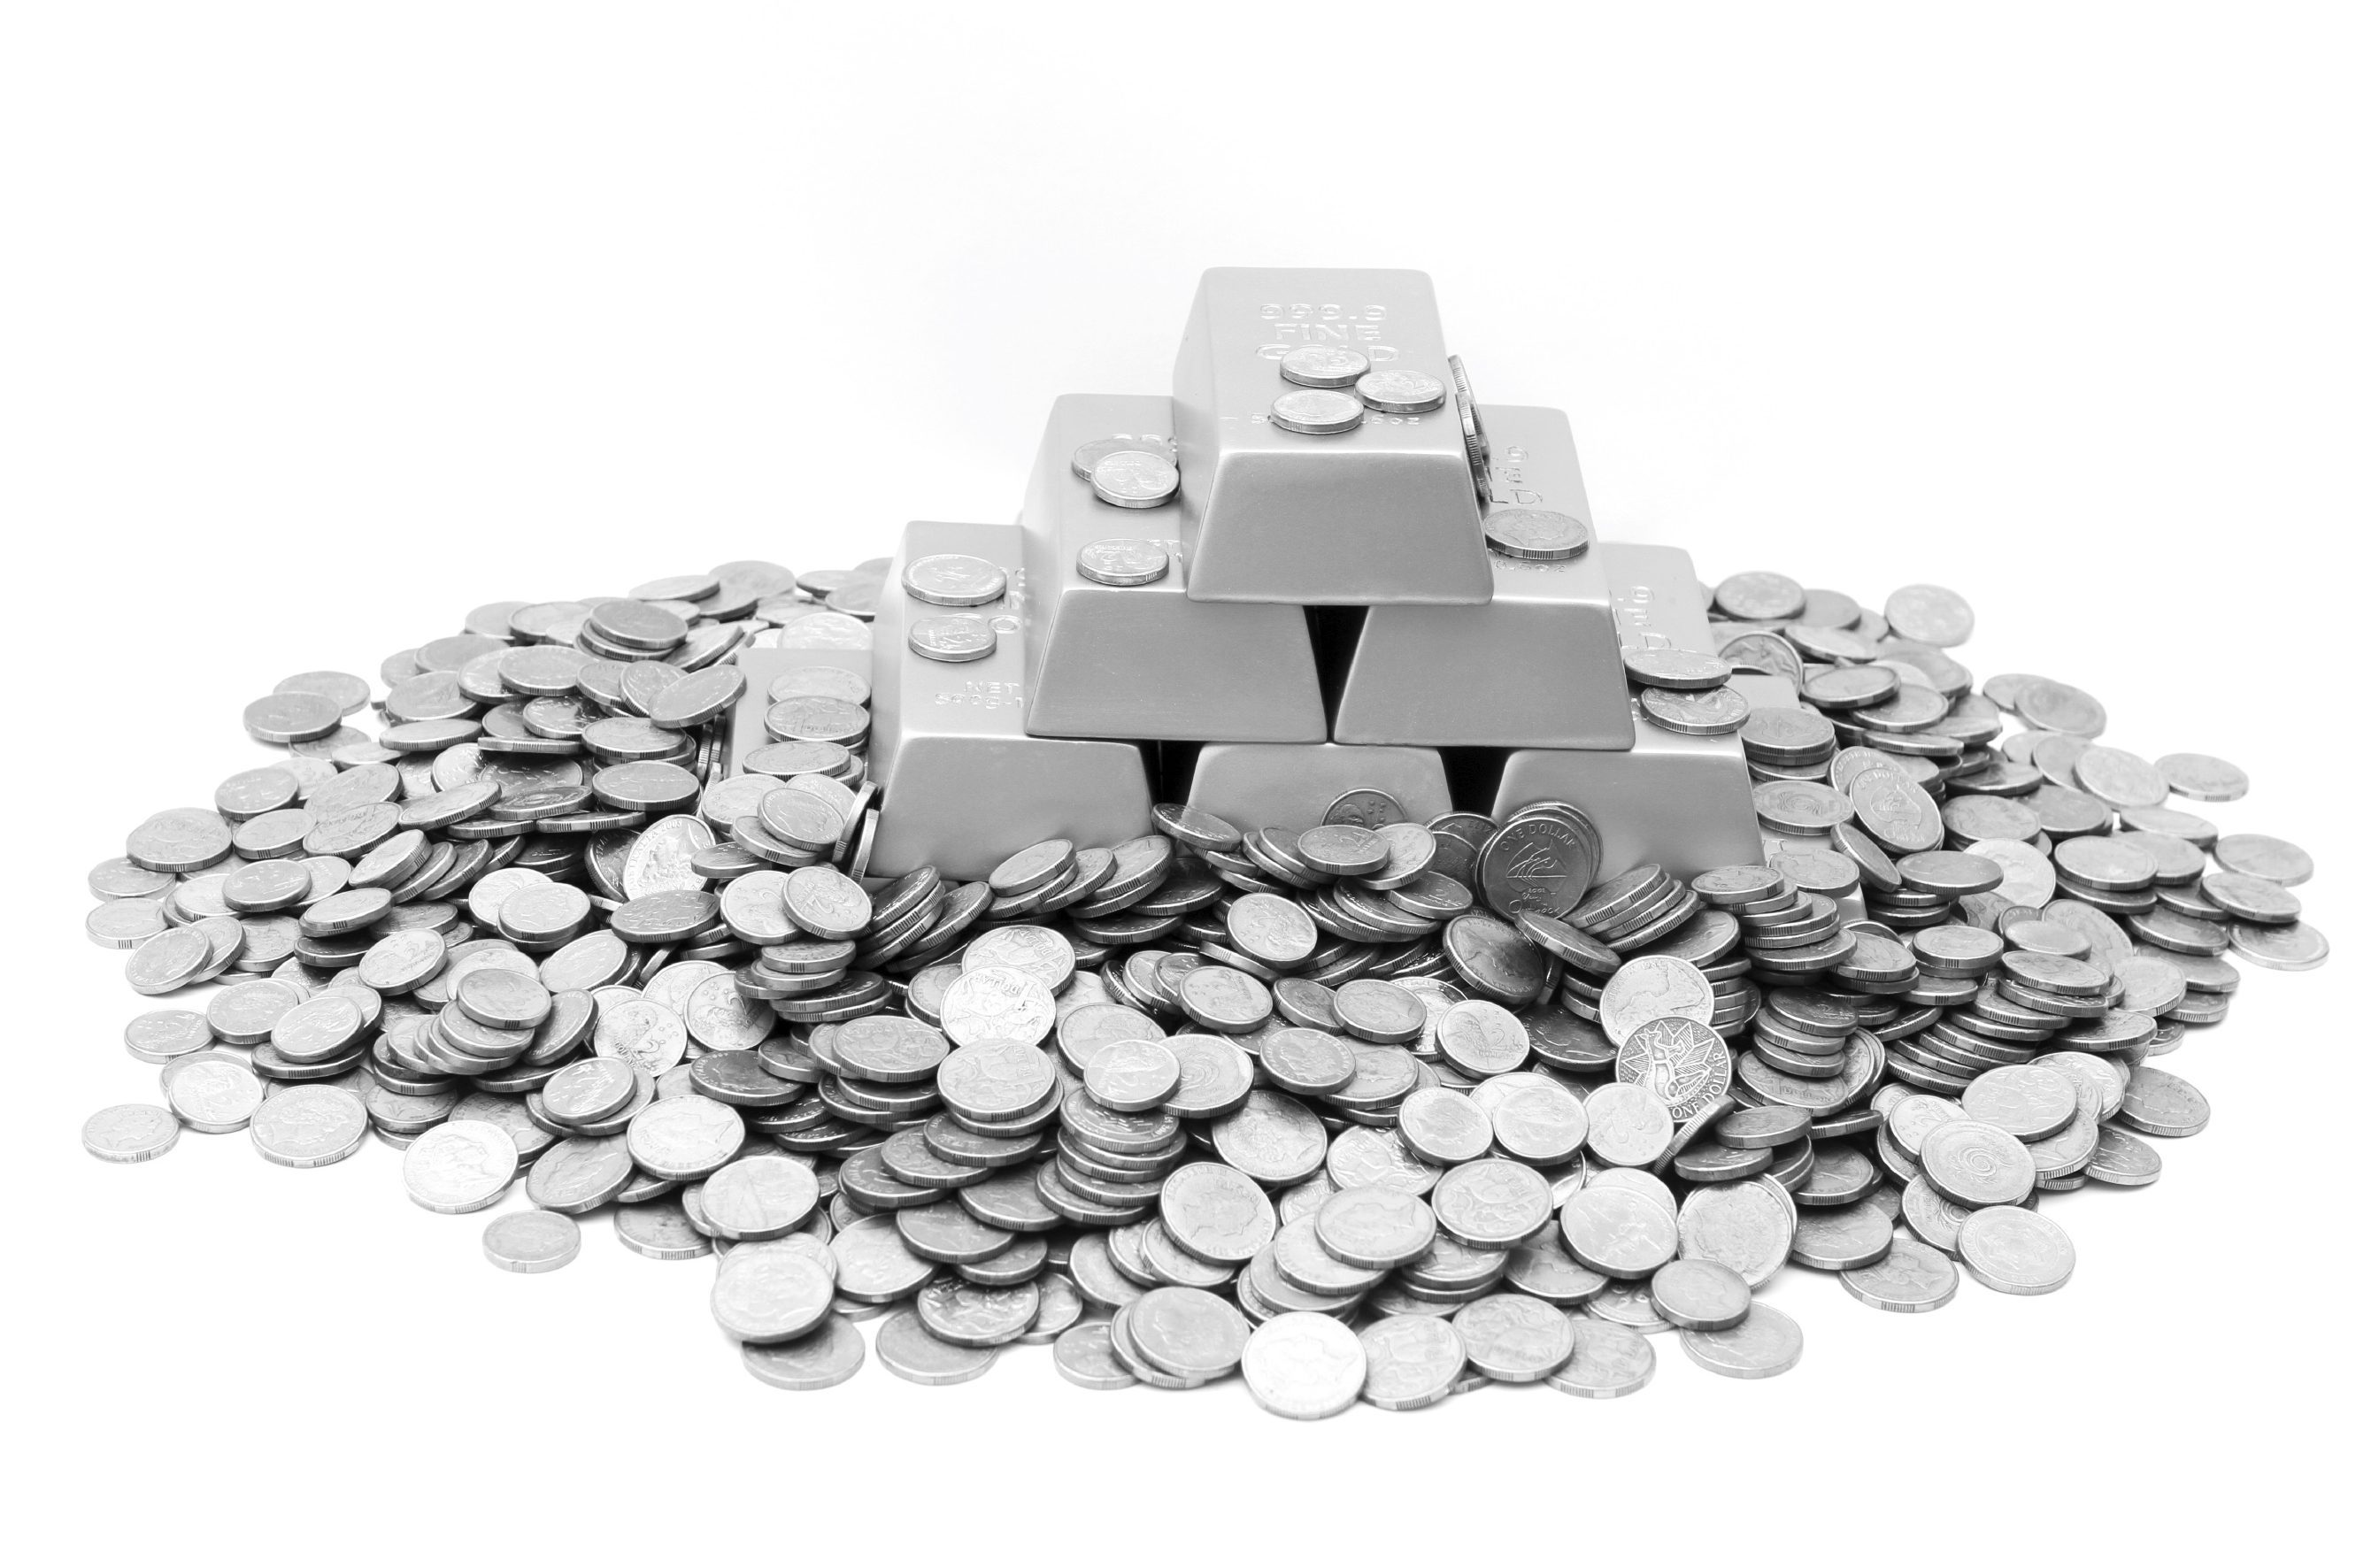 A pile of gold coins and bars